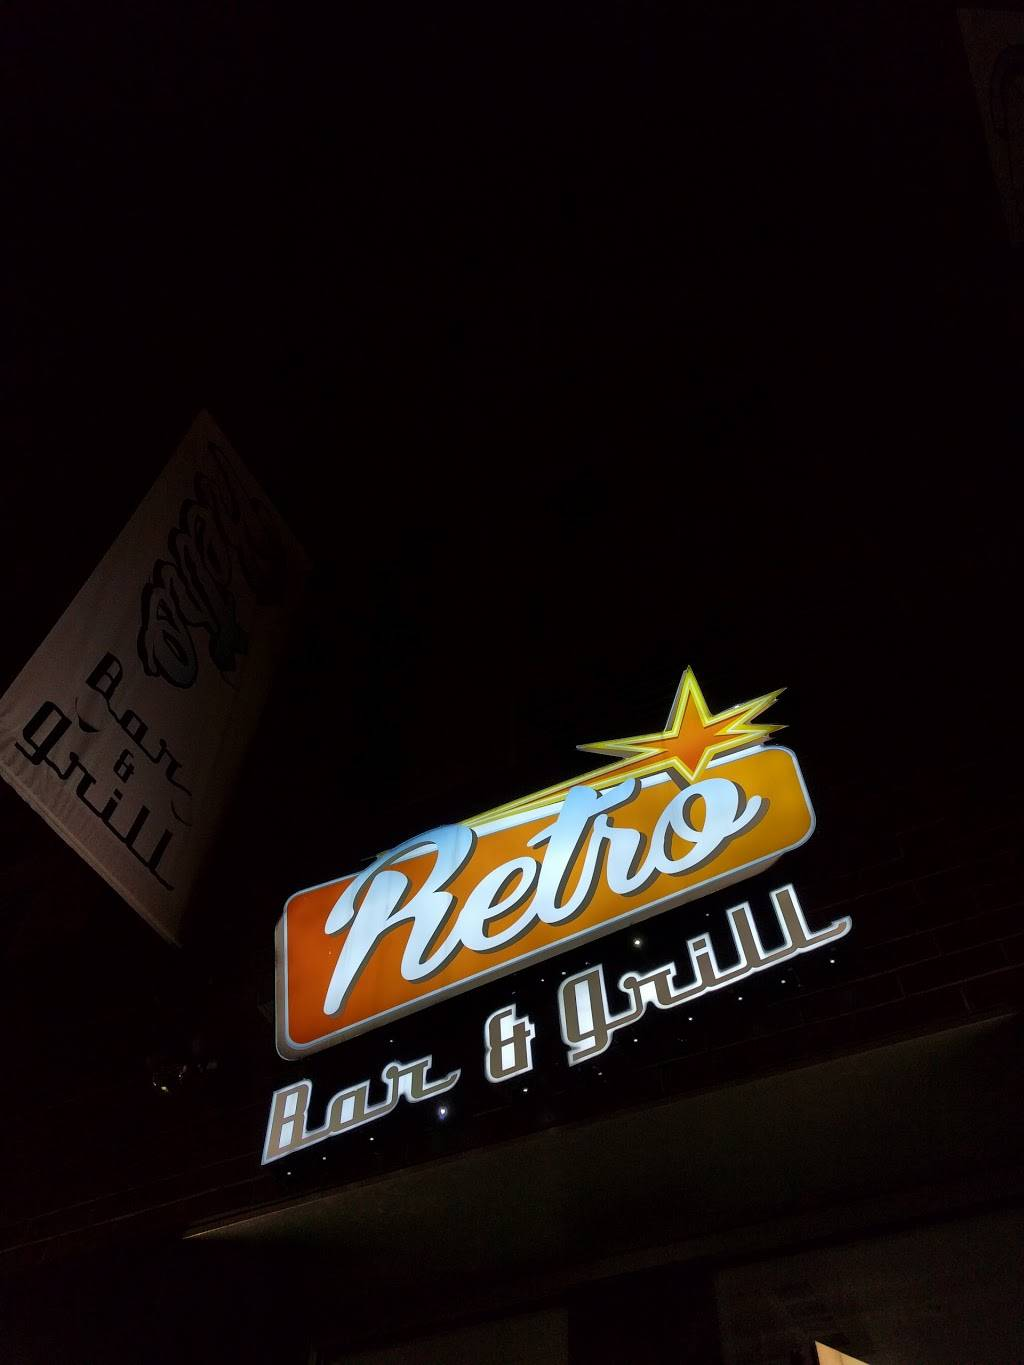 Retro Bar and Grill | restaurant | 150 Delancey St, New York, NY 10002, USA | 2122288379 OR +1 212-228-8379